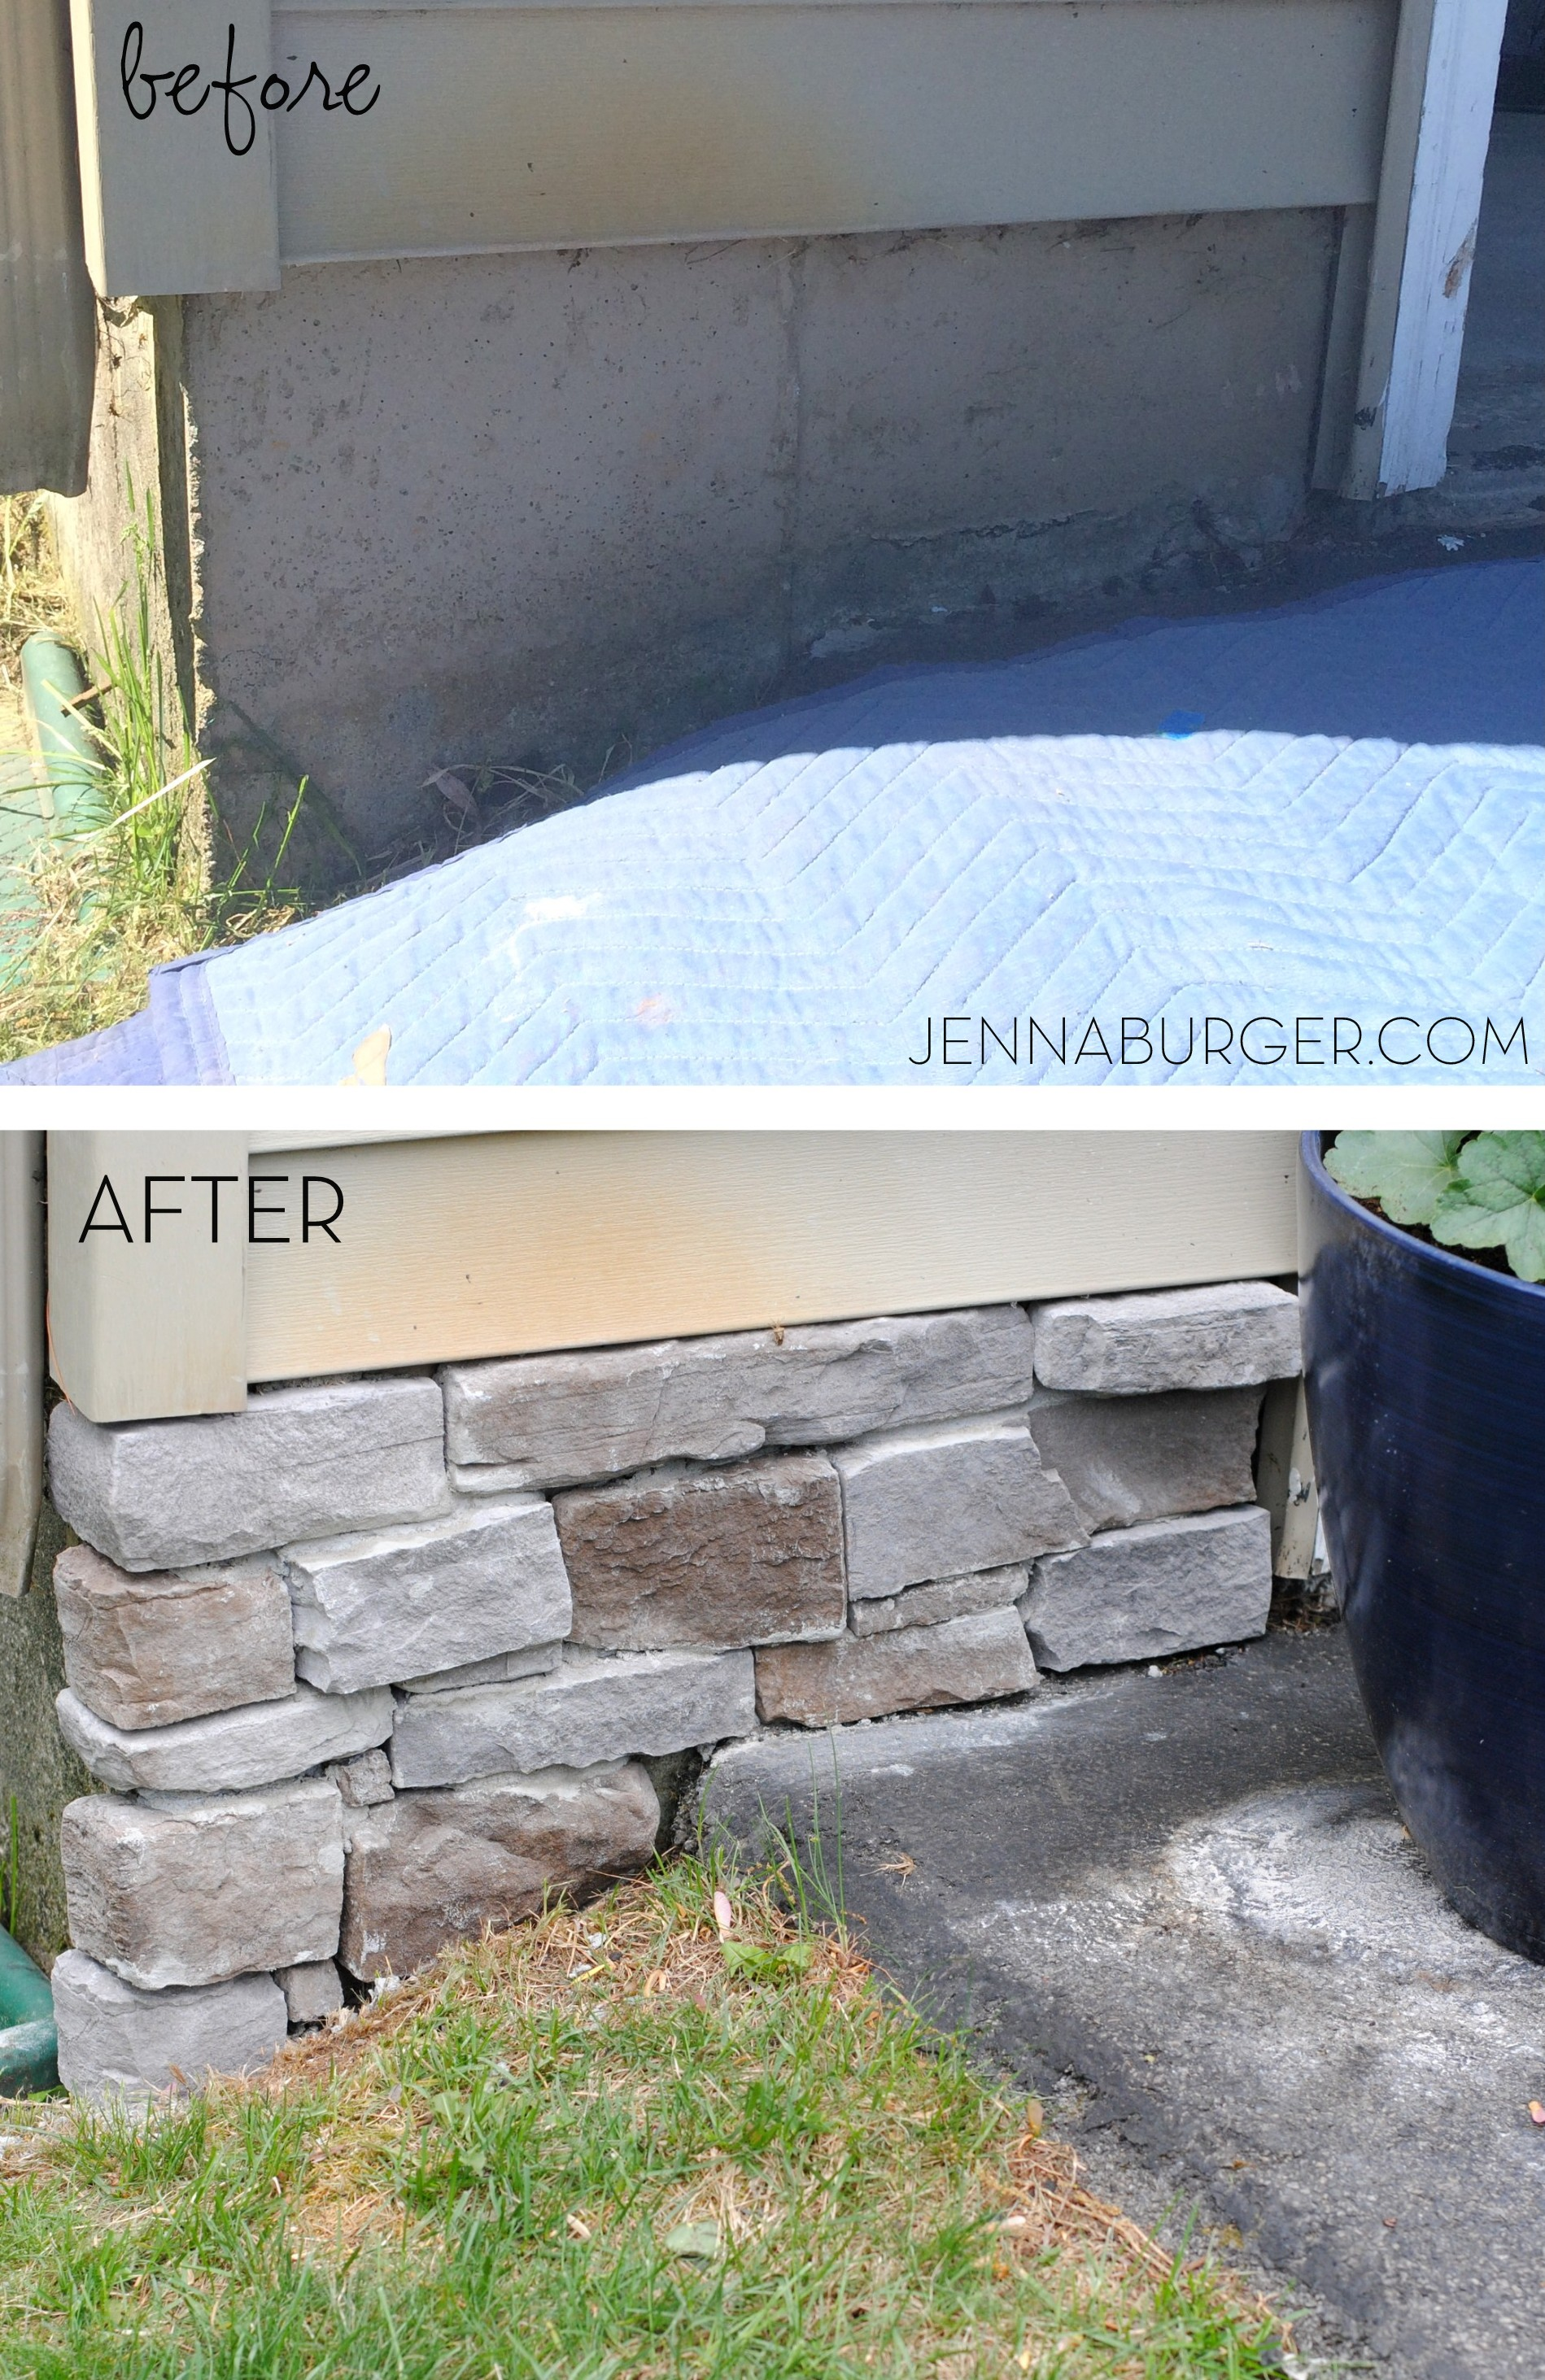 Adding stone veneer to a concrete foundation wall jenna burger diy tutorial for adding a stone veneer to a concrete foundation wall give a solutioingenieria Image collections